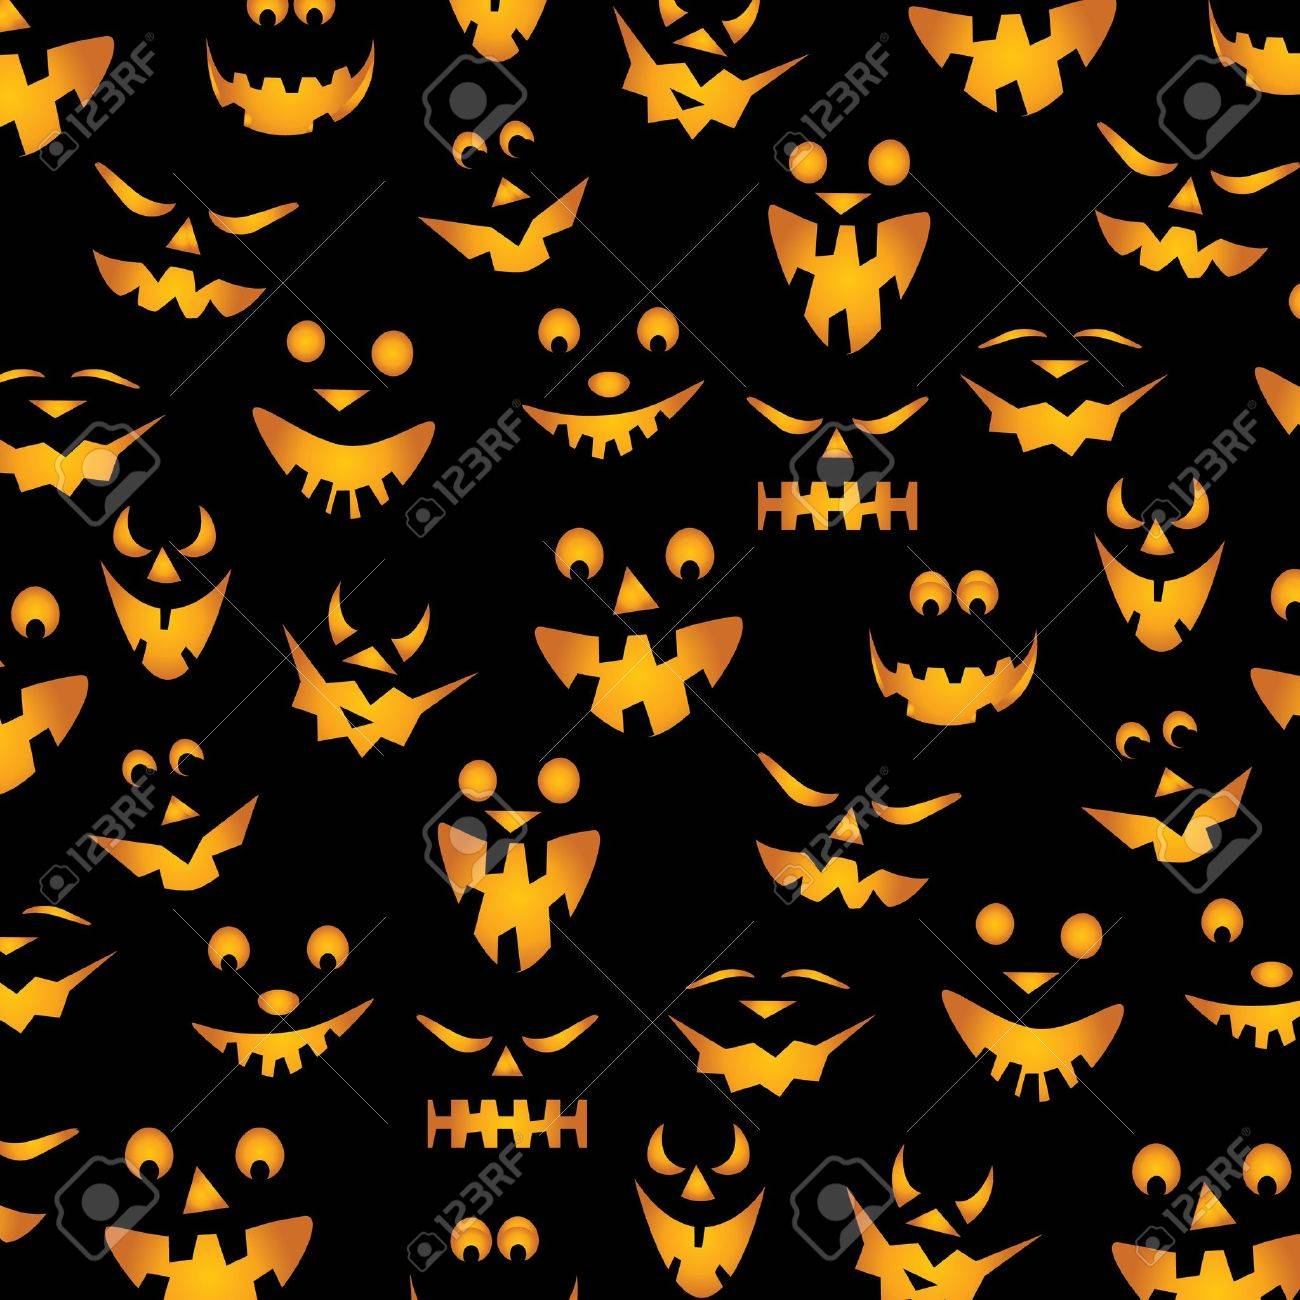 halloween pumpkins background royalty free cliparts vectors and